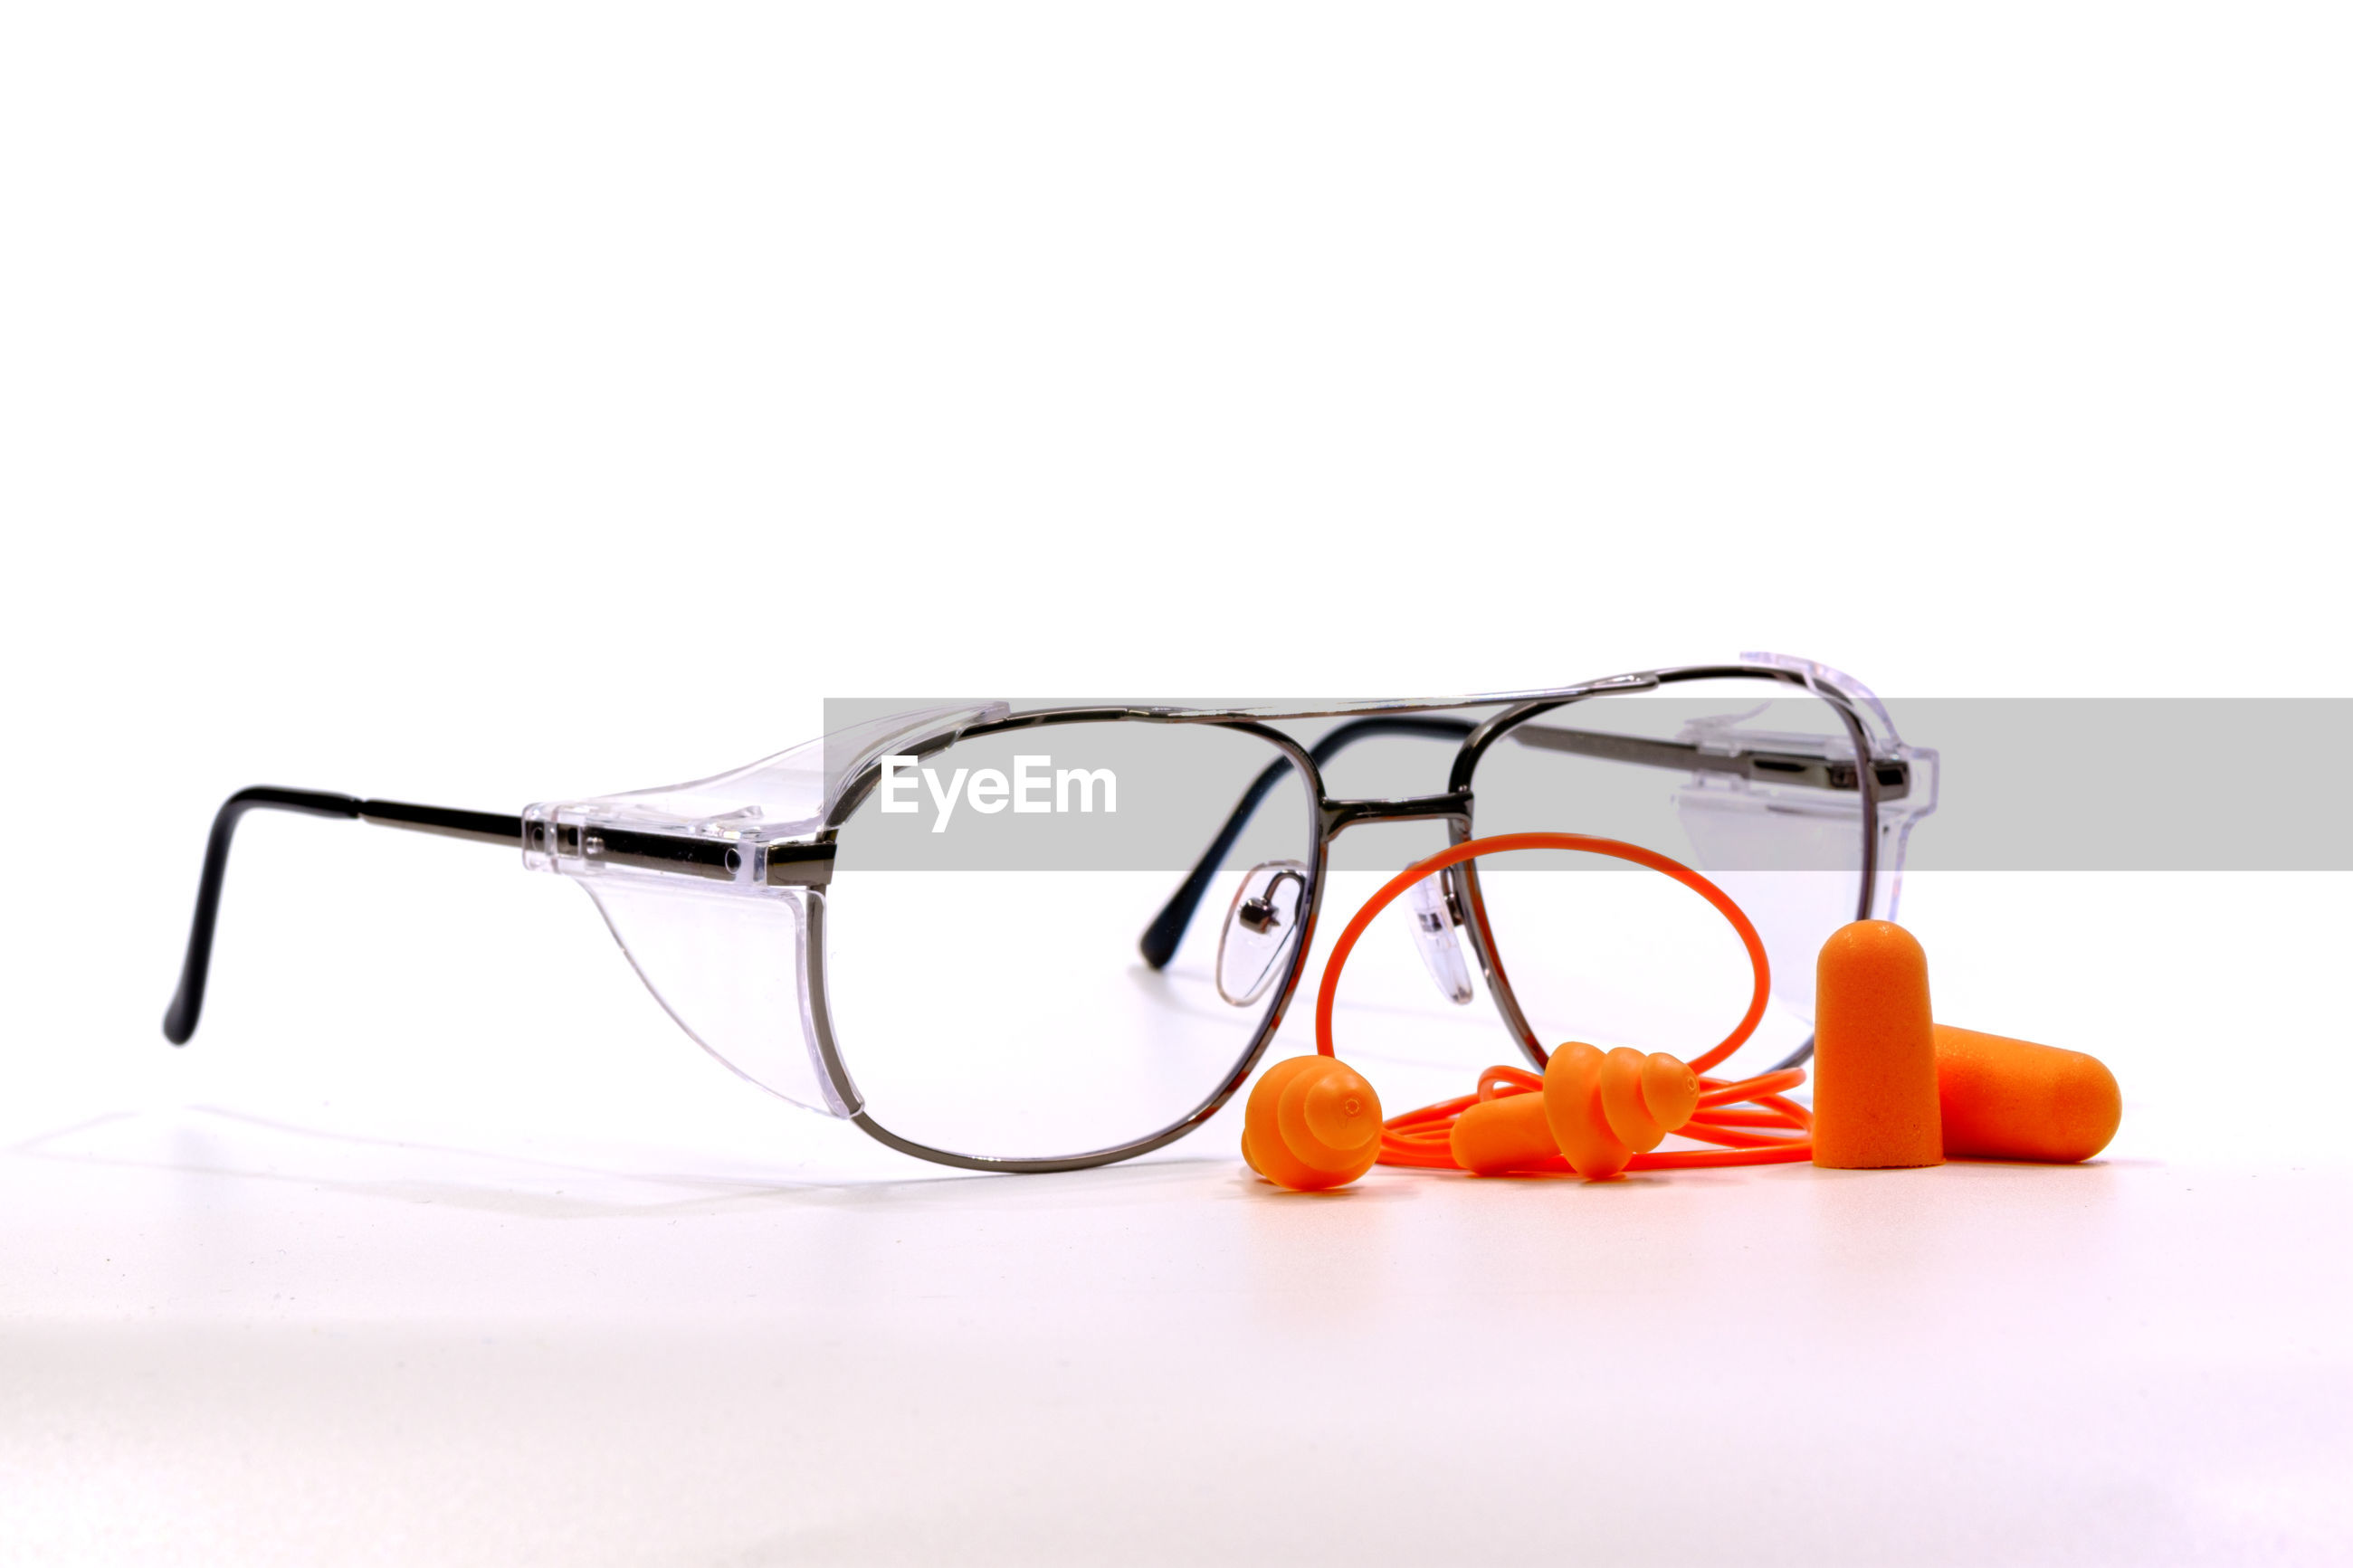 Close-up of eyeglasses with in-ear headphones against white background